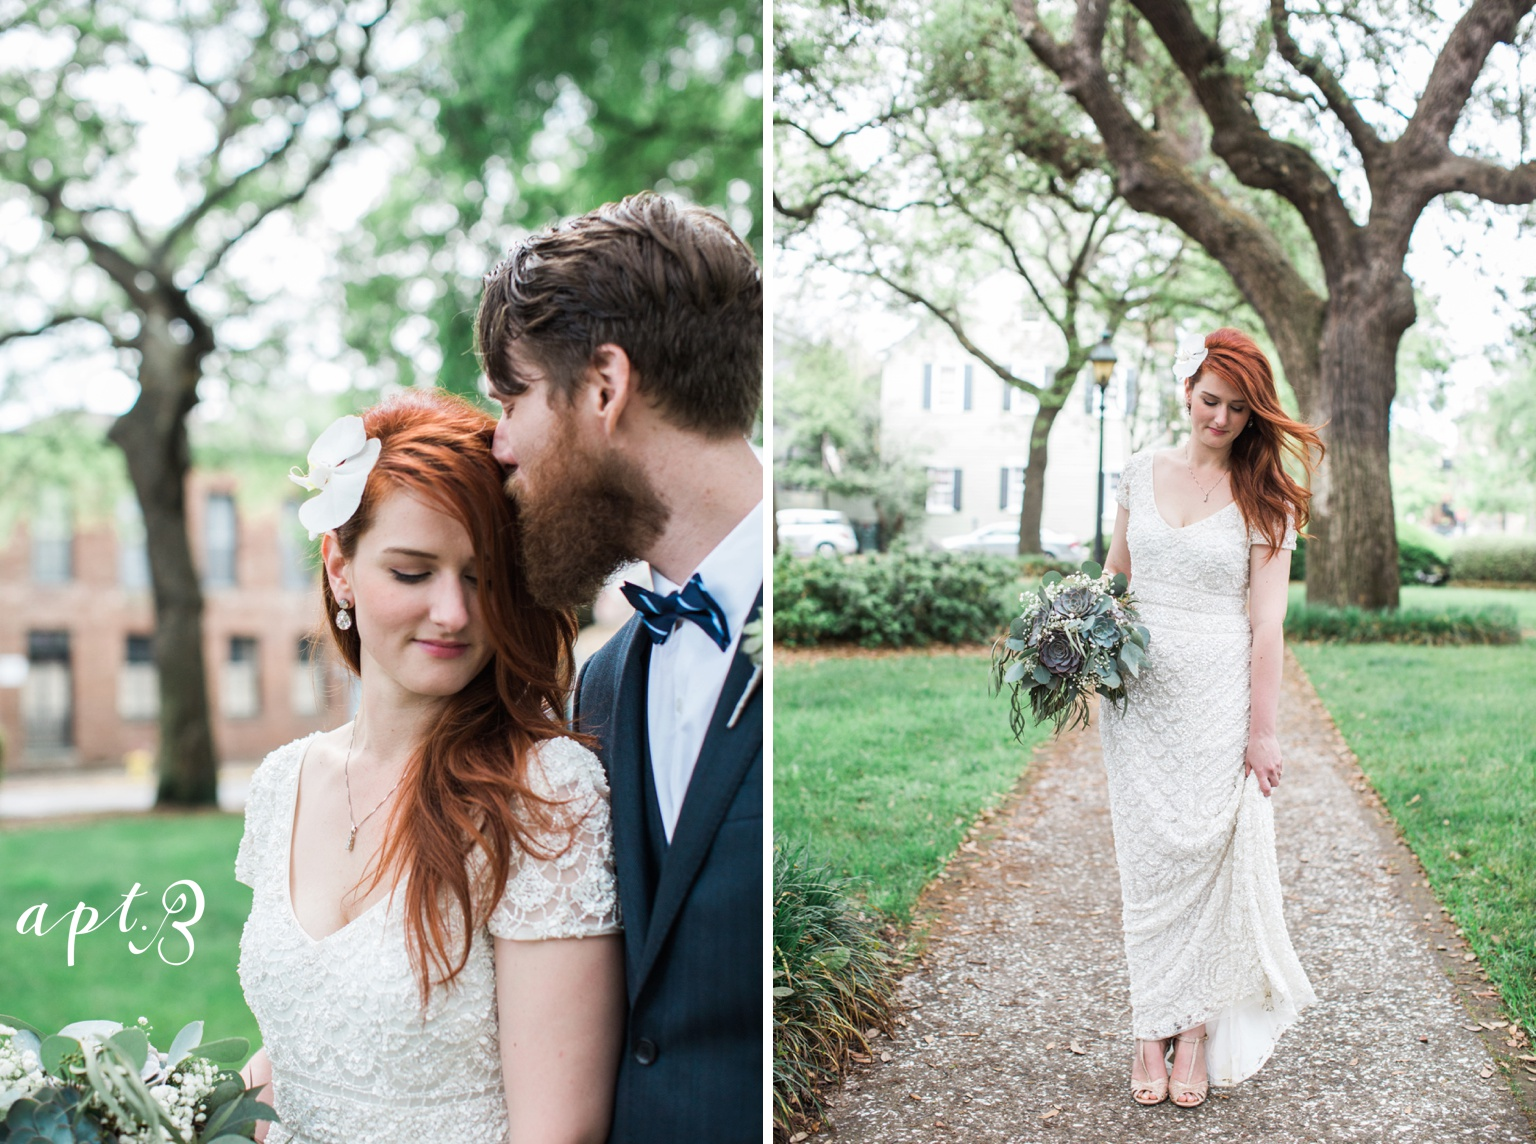 AptBPhotography_SavannahWedding_ChaBella-53.jpg